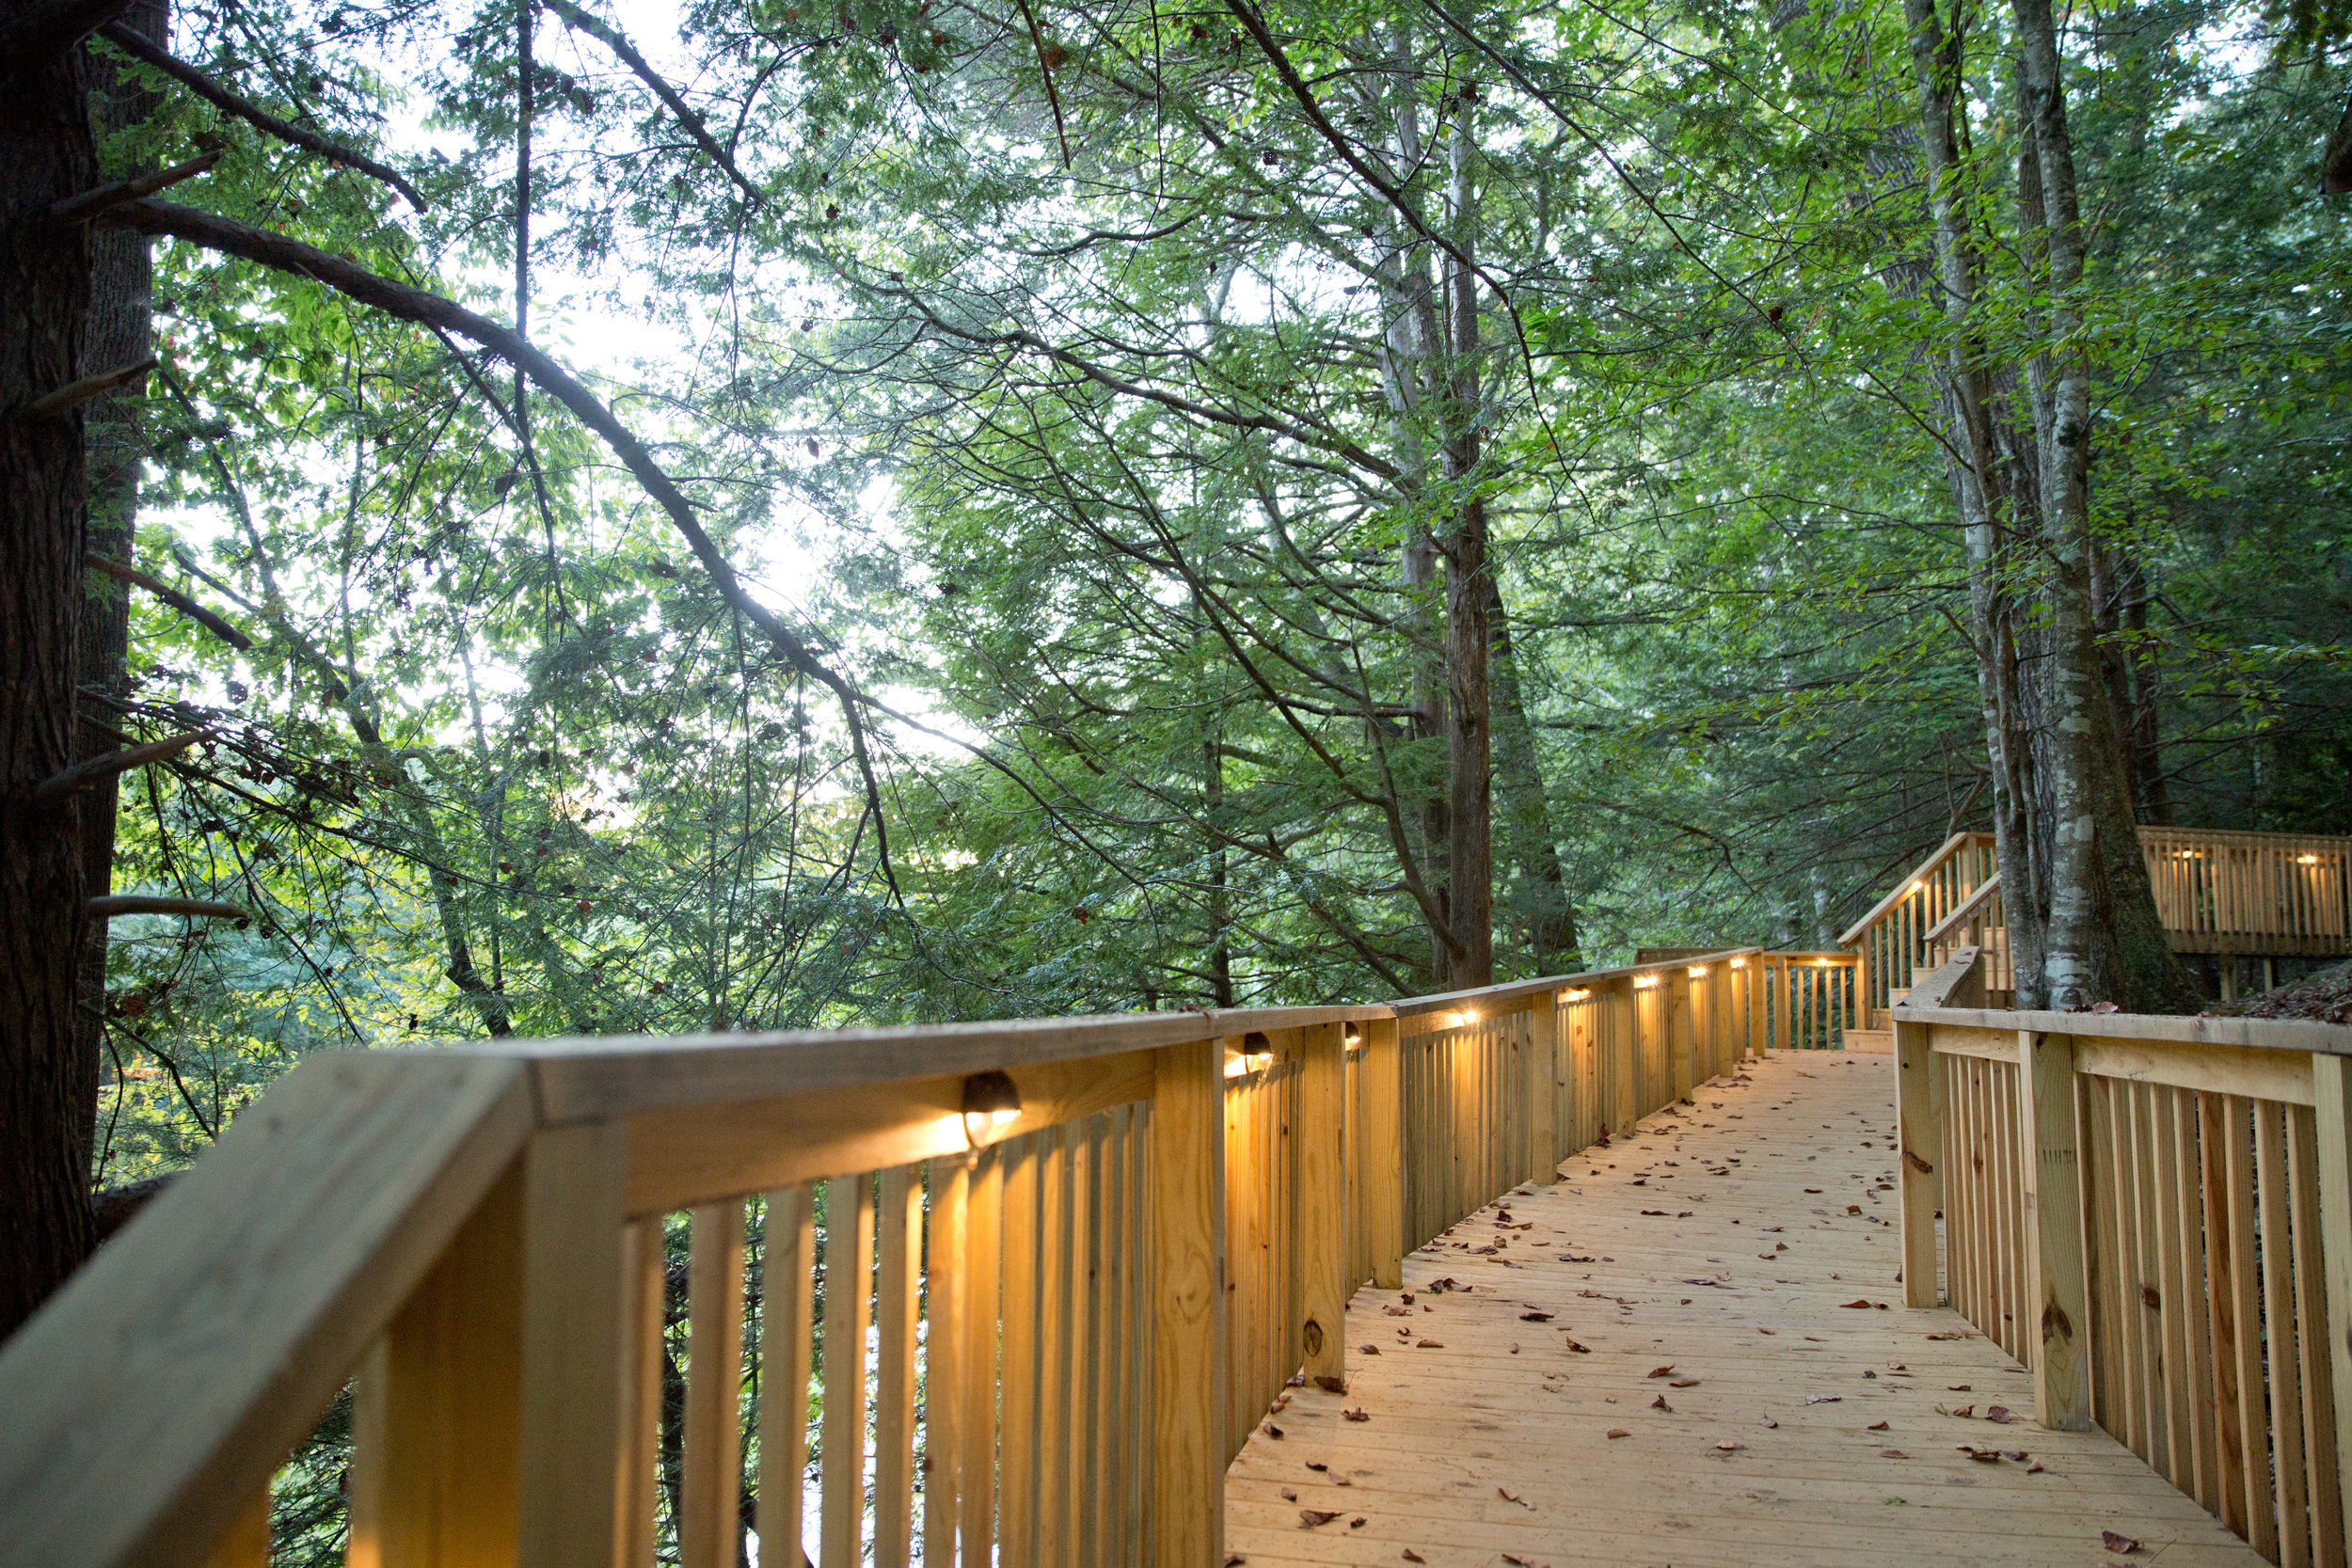 Pathway to the Cabins, Love!